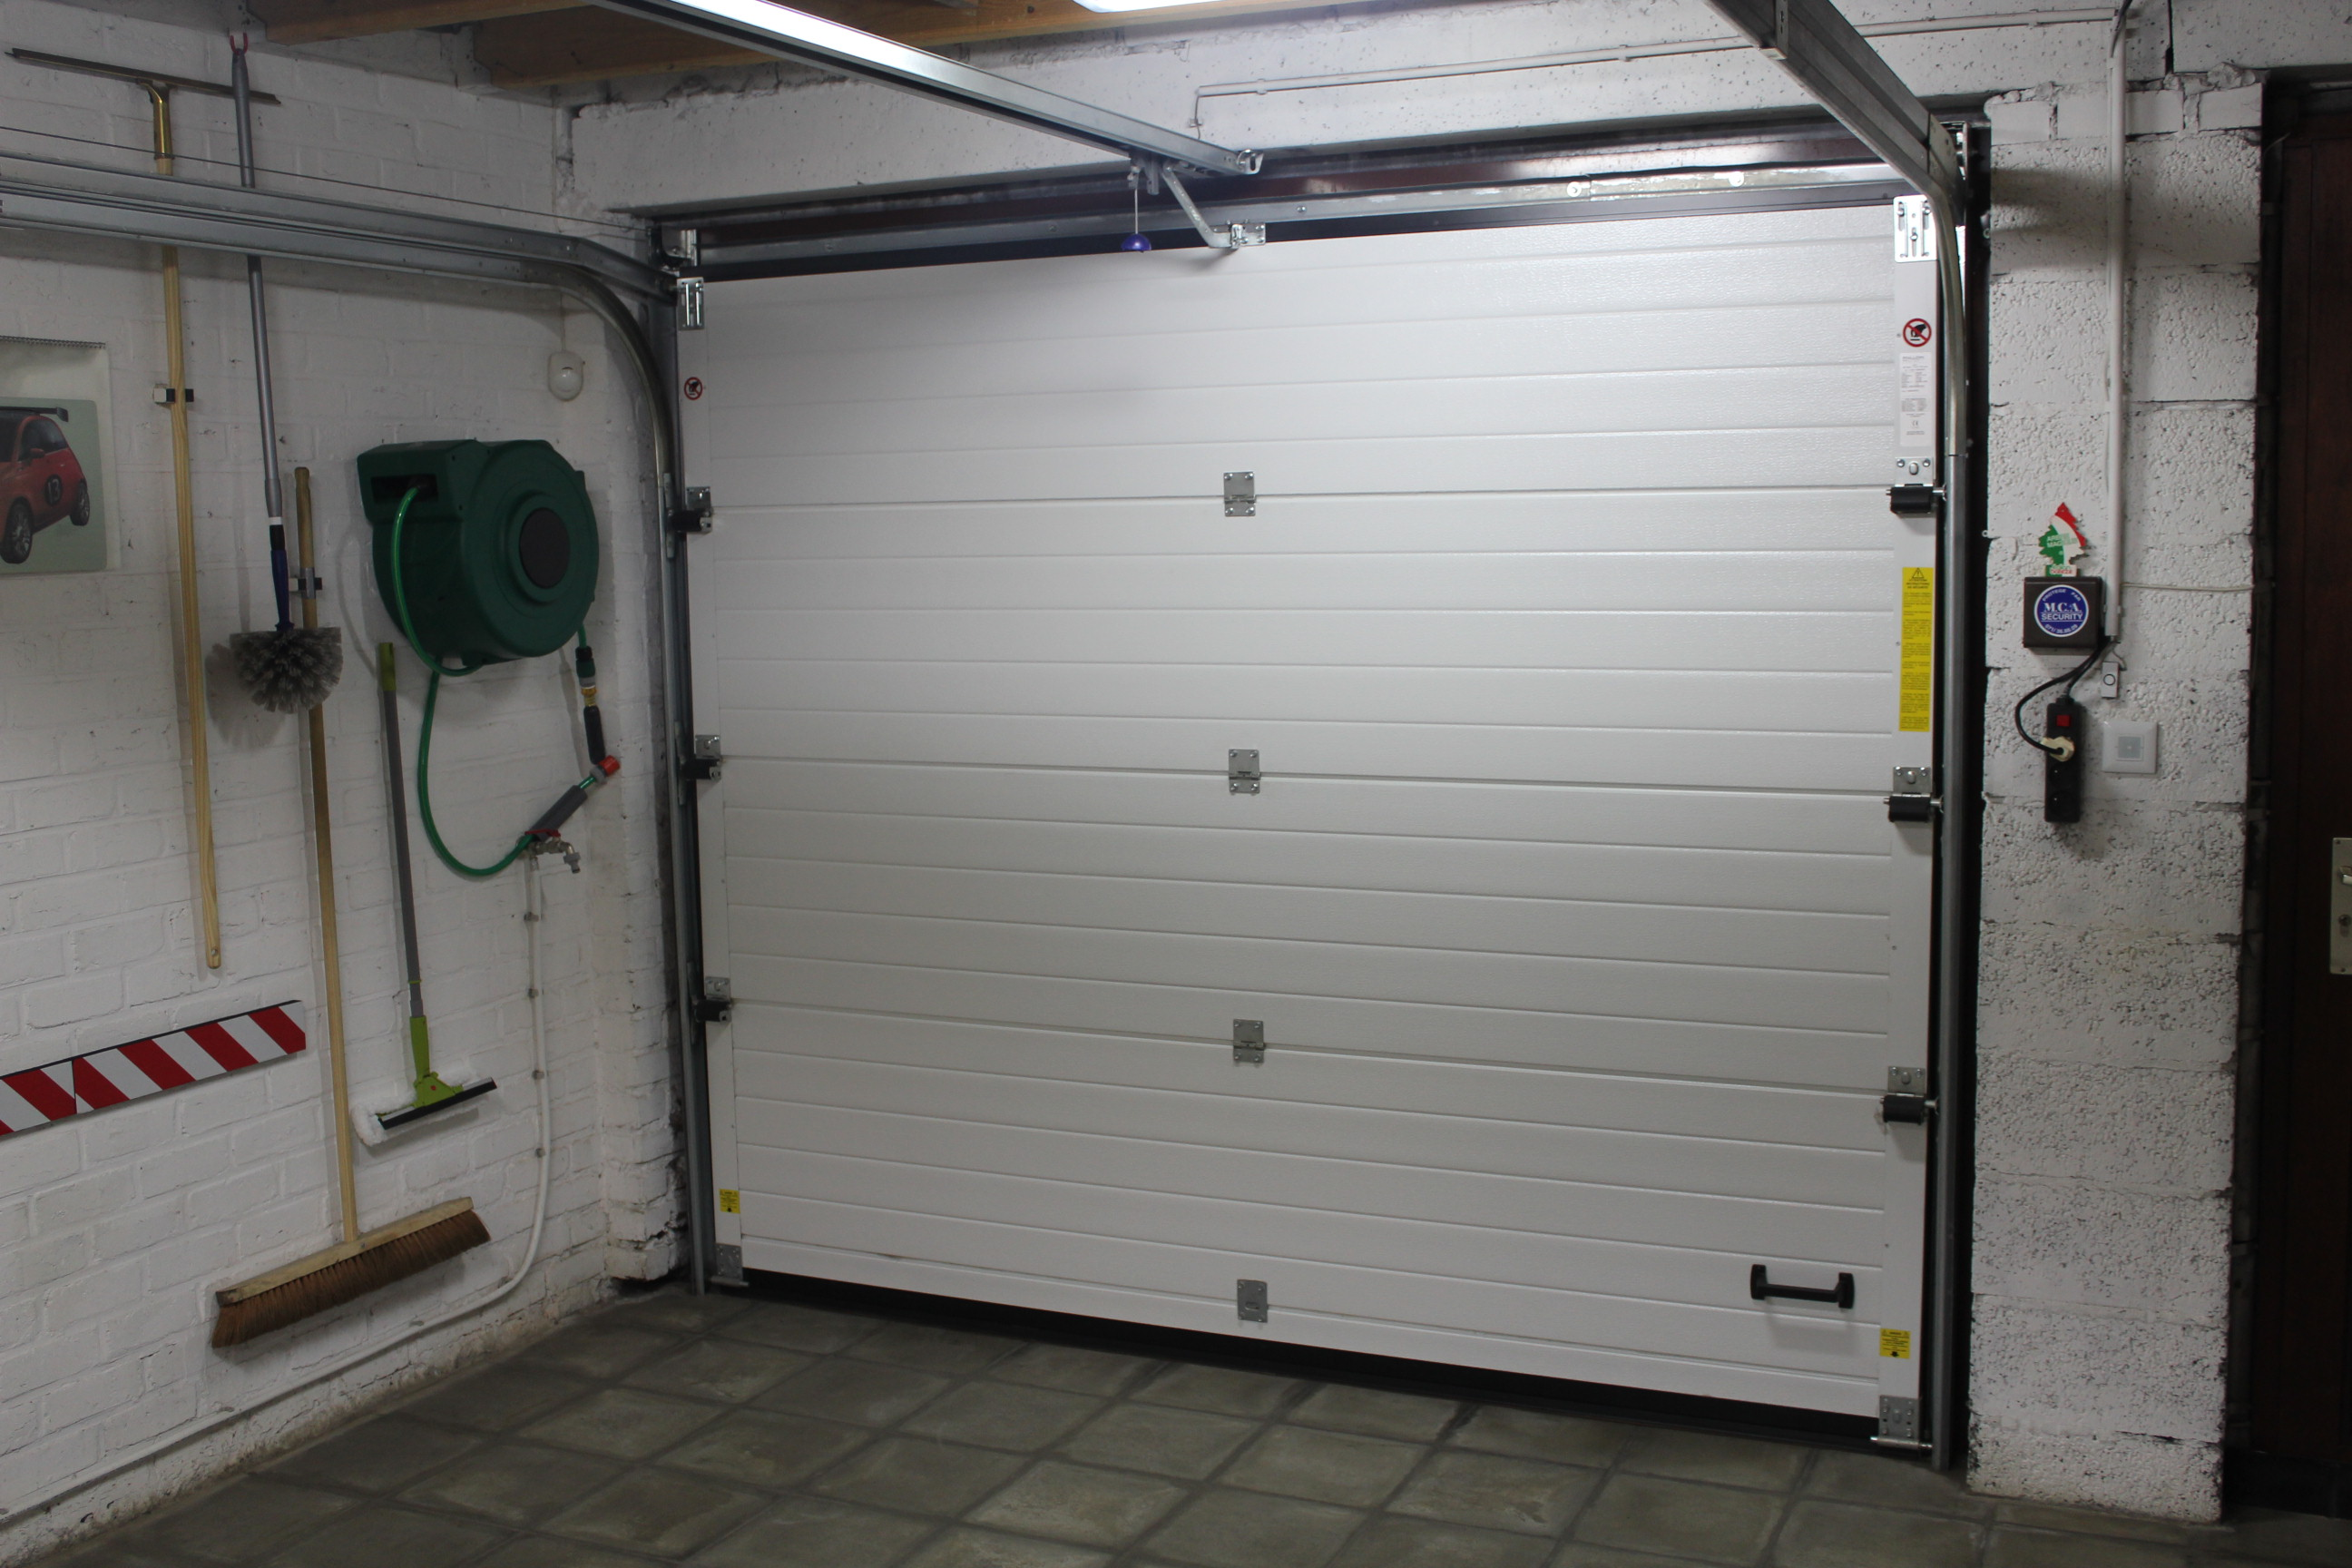 Placement de porte de garage sectionnelle et basculante - Securiser porte de garage basculante ...